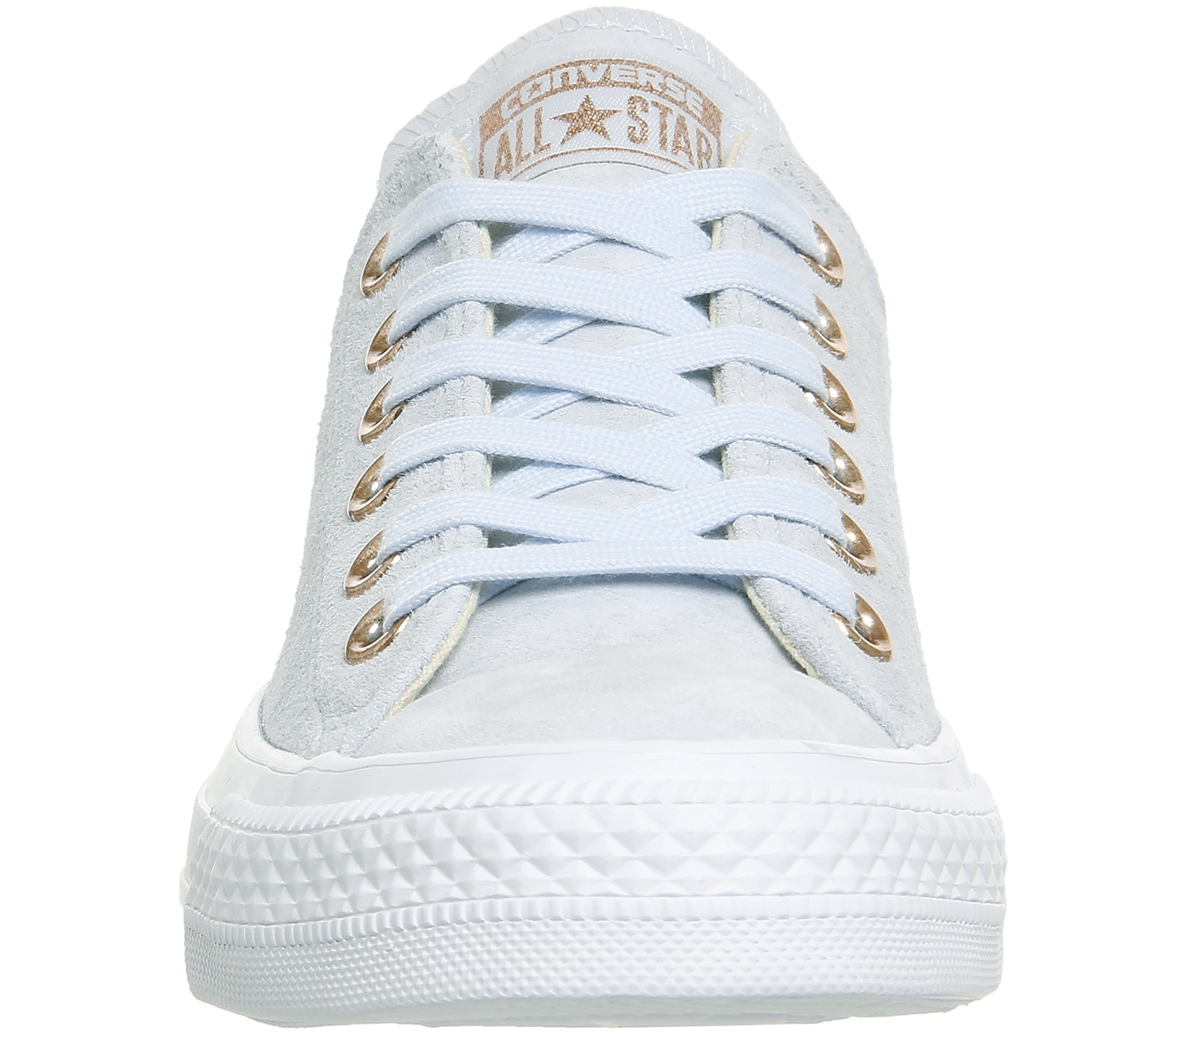 0c523ada3a0c Womens Converse All Star Low Leather BLUE TINT BLUSH GOLD WHITE Trainers  Shoes